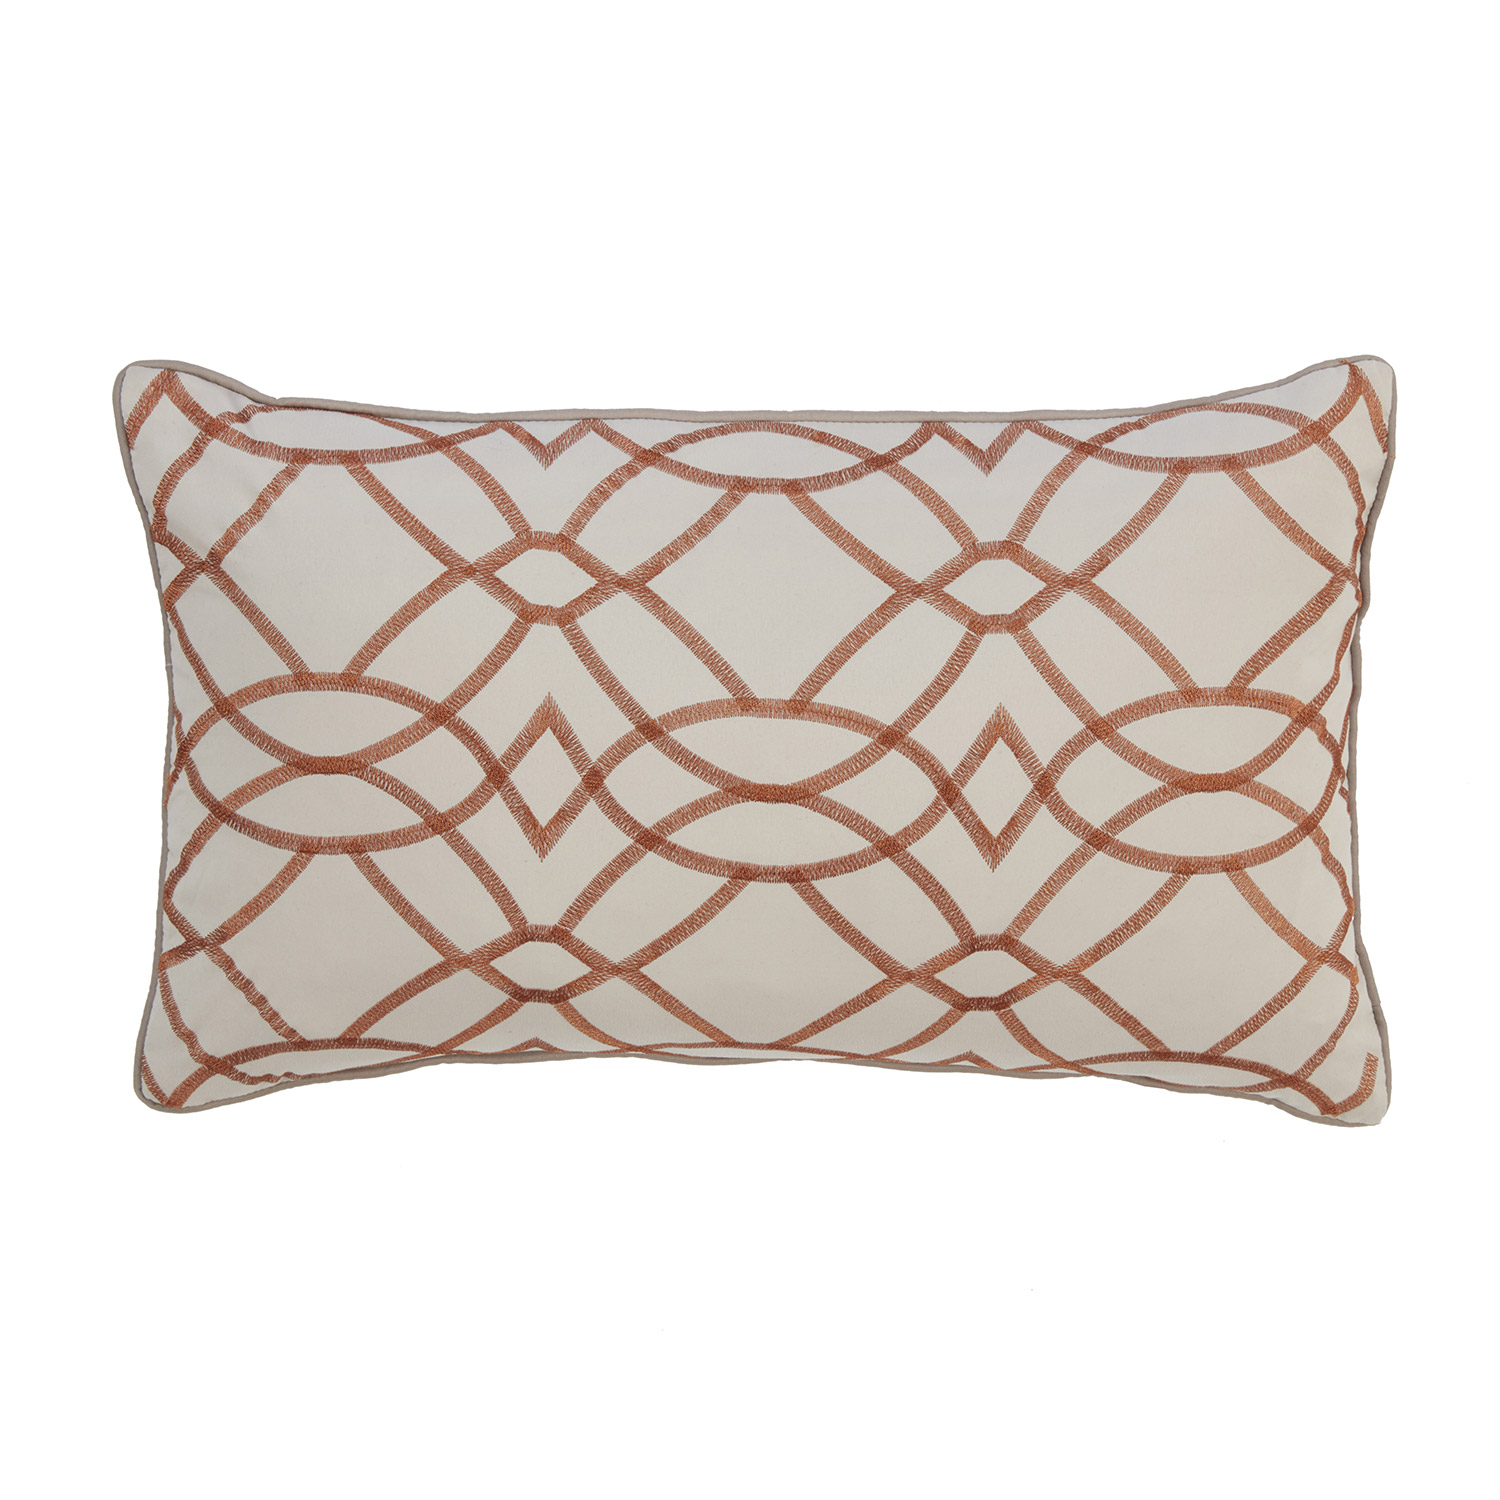 Stockists of Alex Luxury Quilted Filled Boudoir Cushion